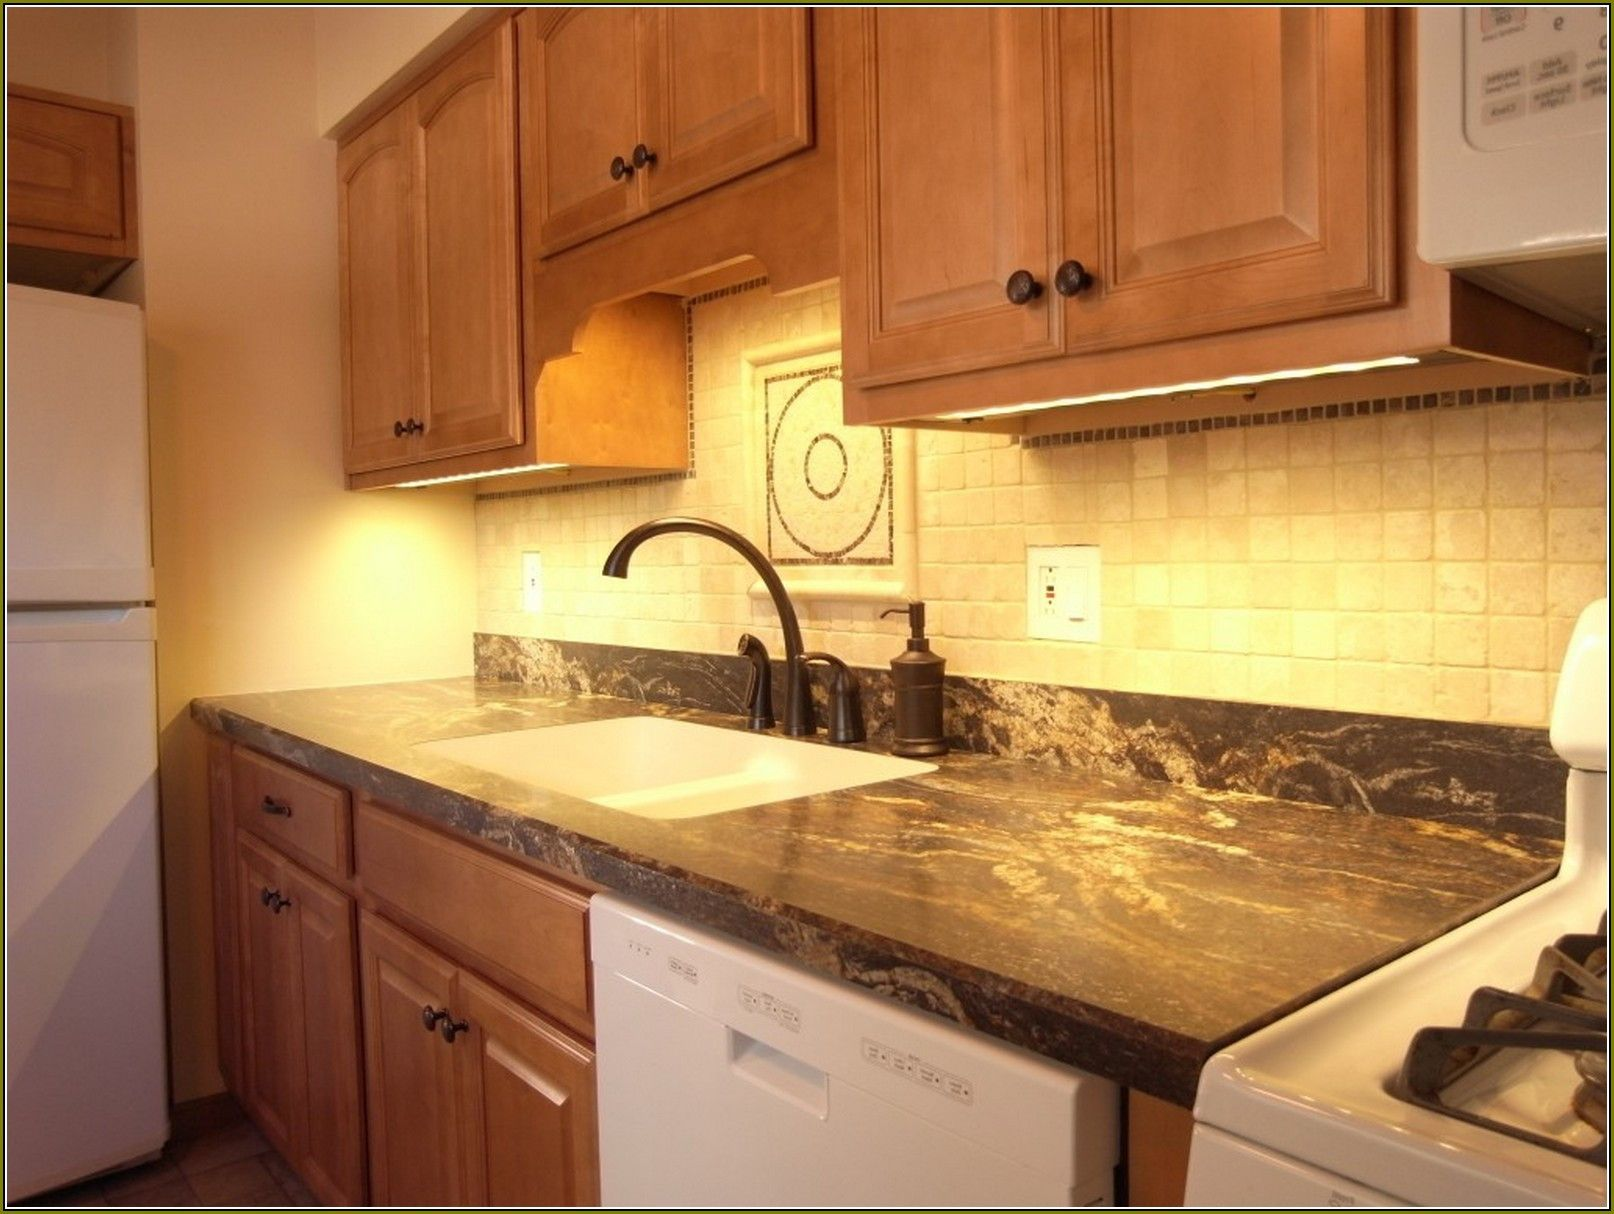 20 Xenon Task Lighting Under Cabinet Kitchen Island Countertop Ideas Check More At Http